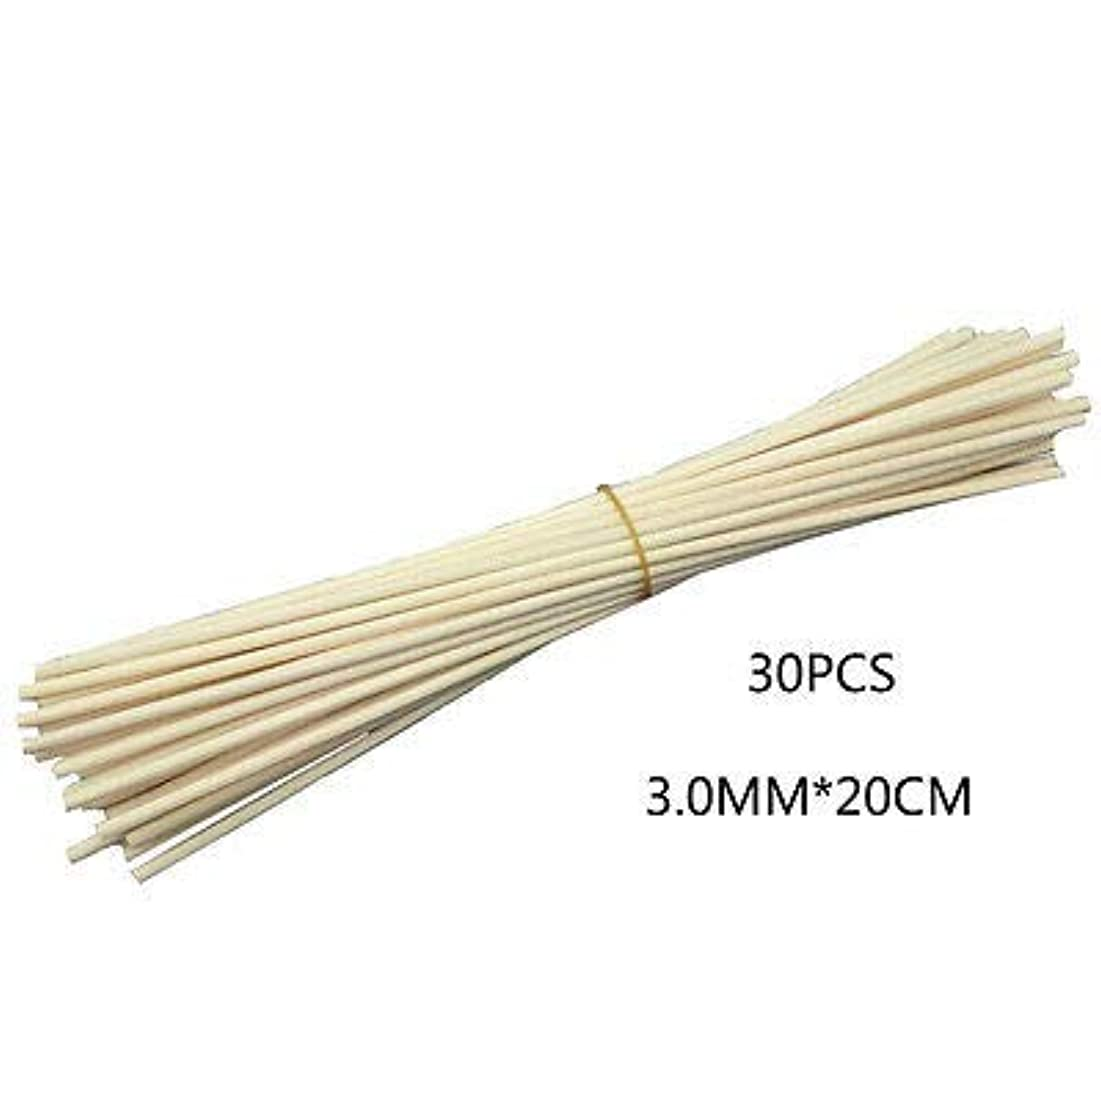 永久によく話されるキャラバンFidgetGear 30Pcs/100Pcs Reed Fragrance Oil Diffuser Rattan Sticks Aroma Rattan Wooden 30 Pcs